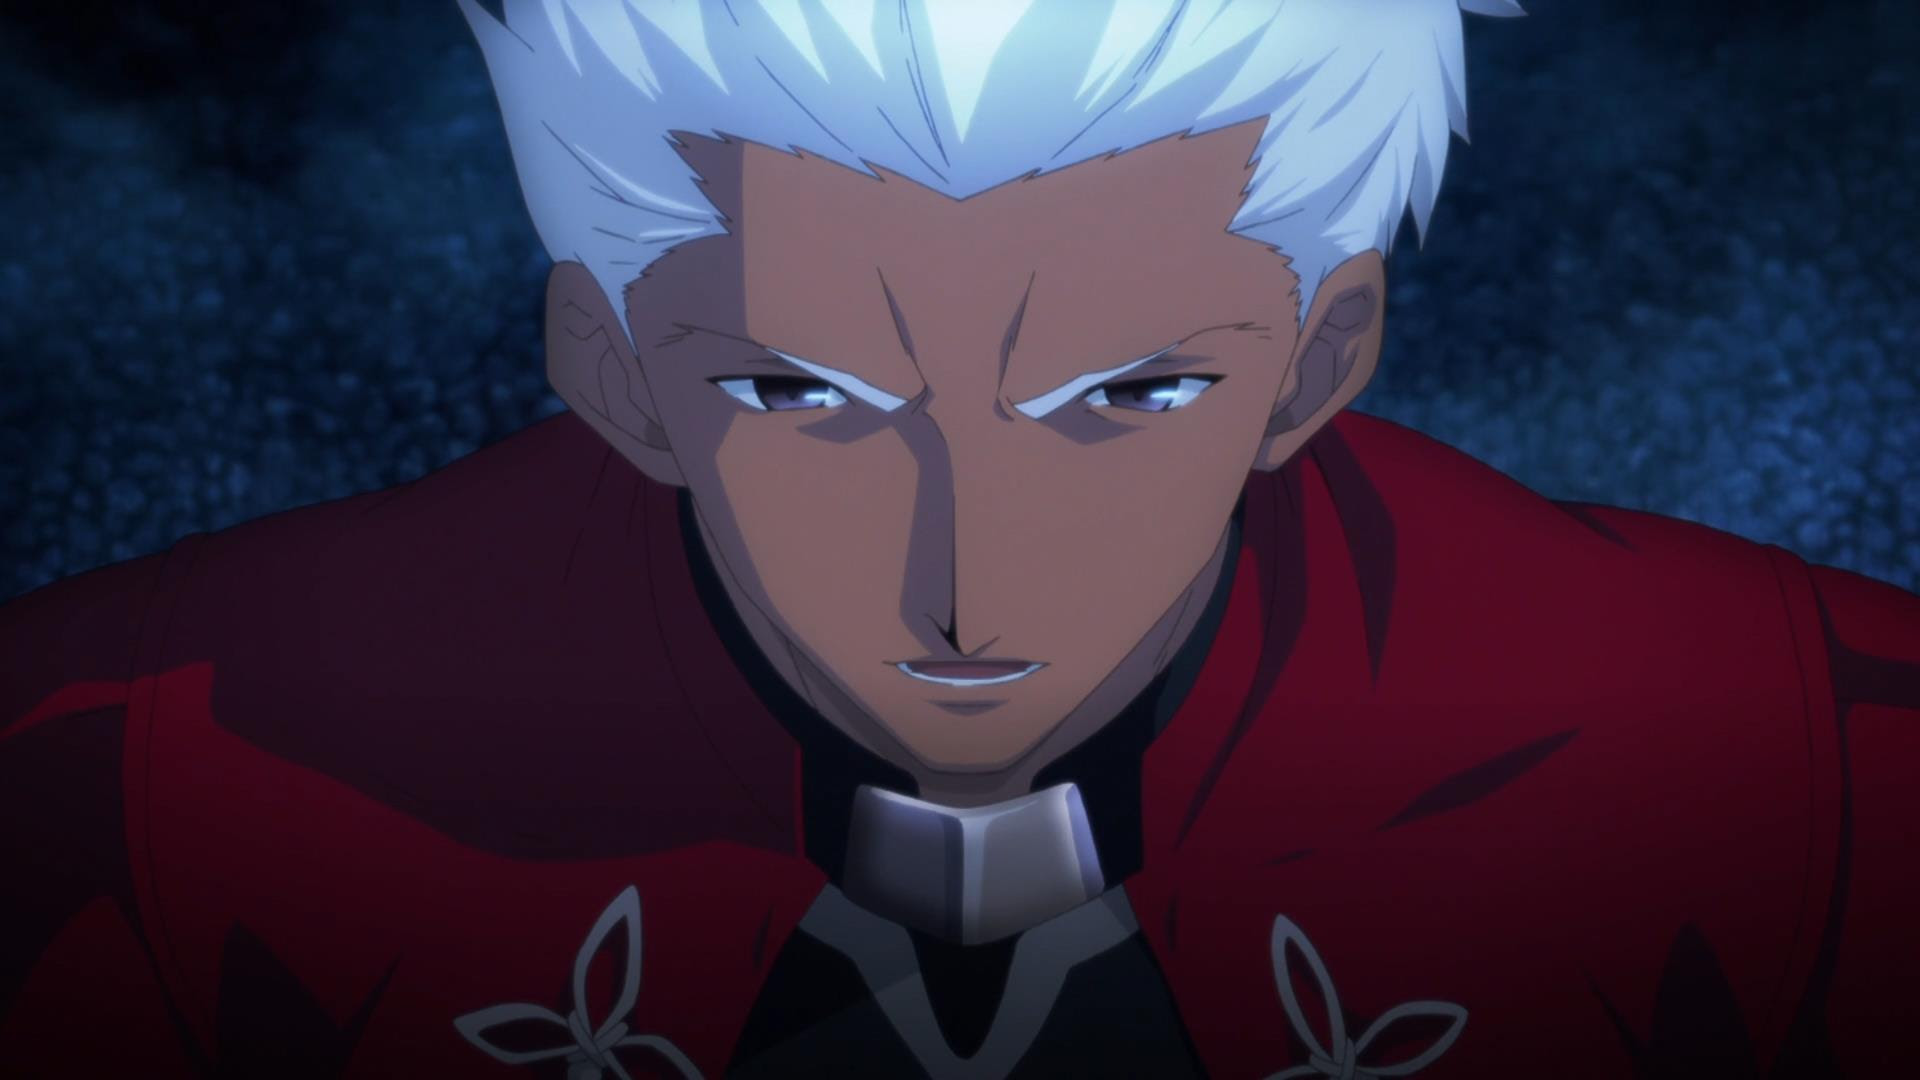 Wallpaper Anime Fate Stay Night Unlimited Blade Works Archer